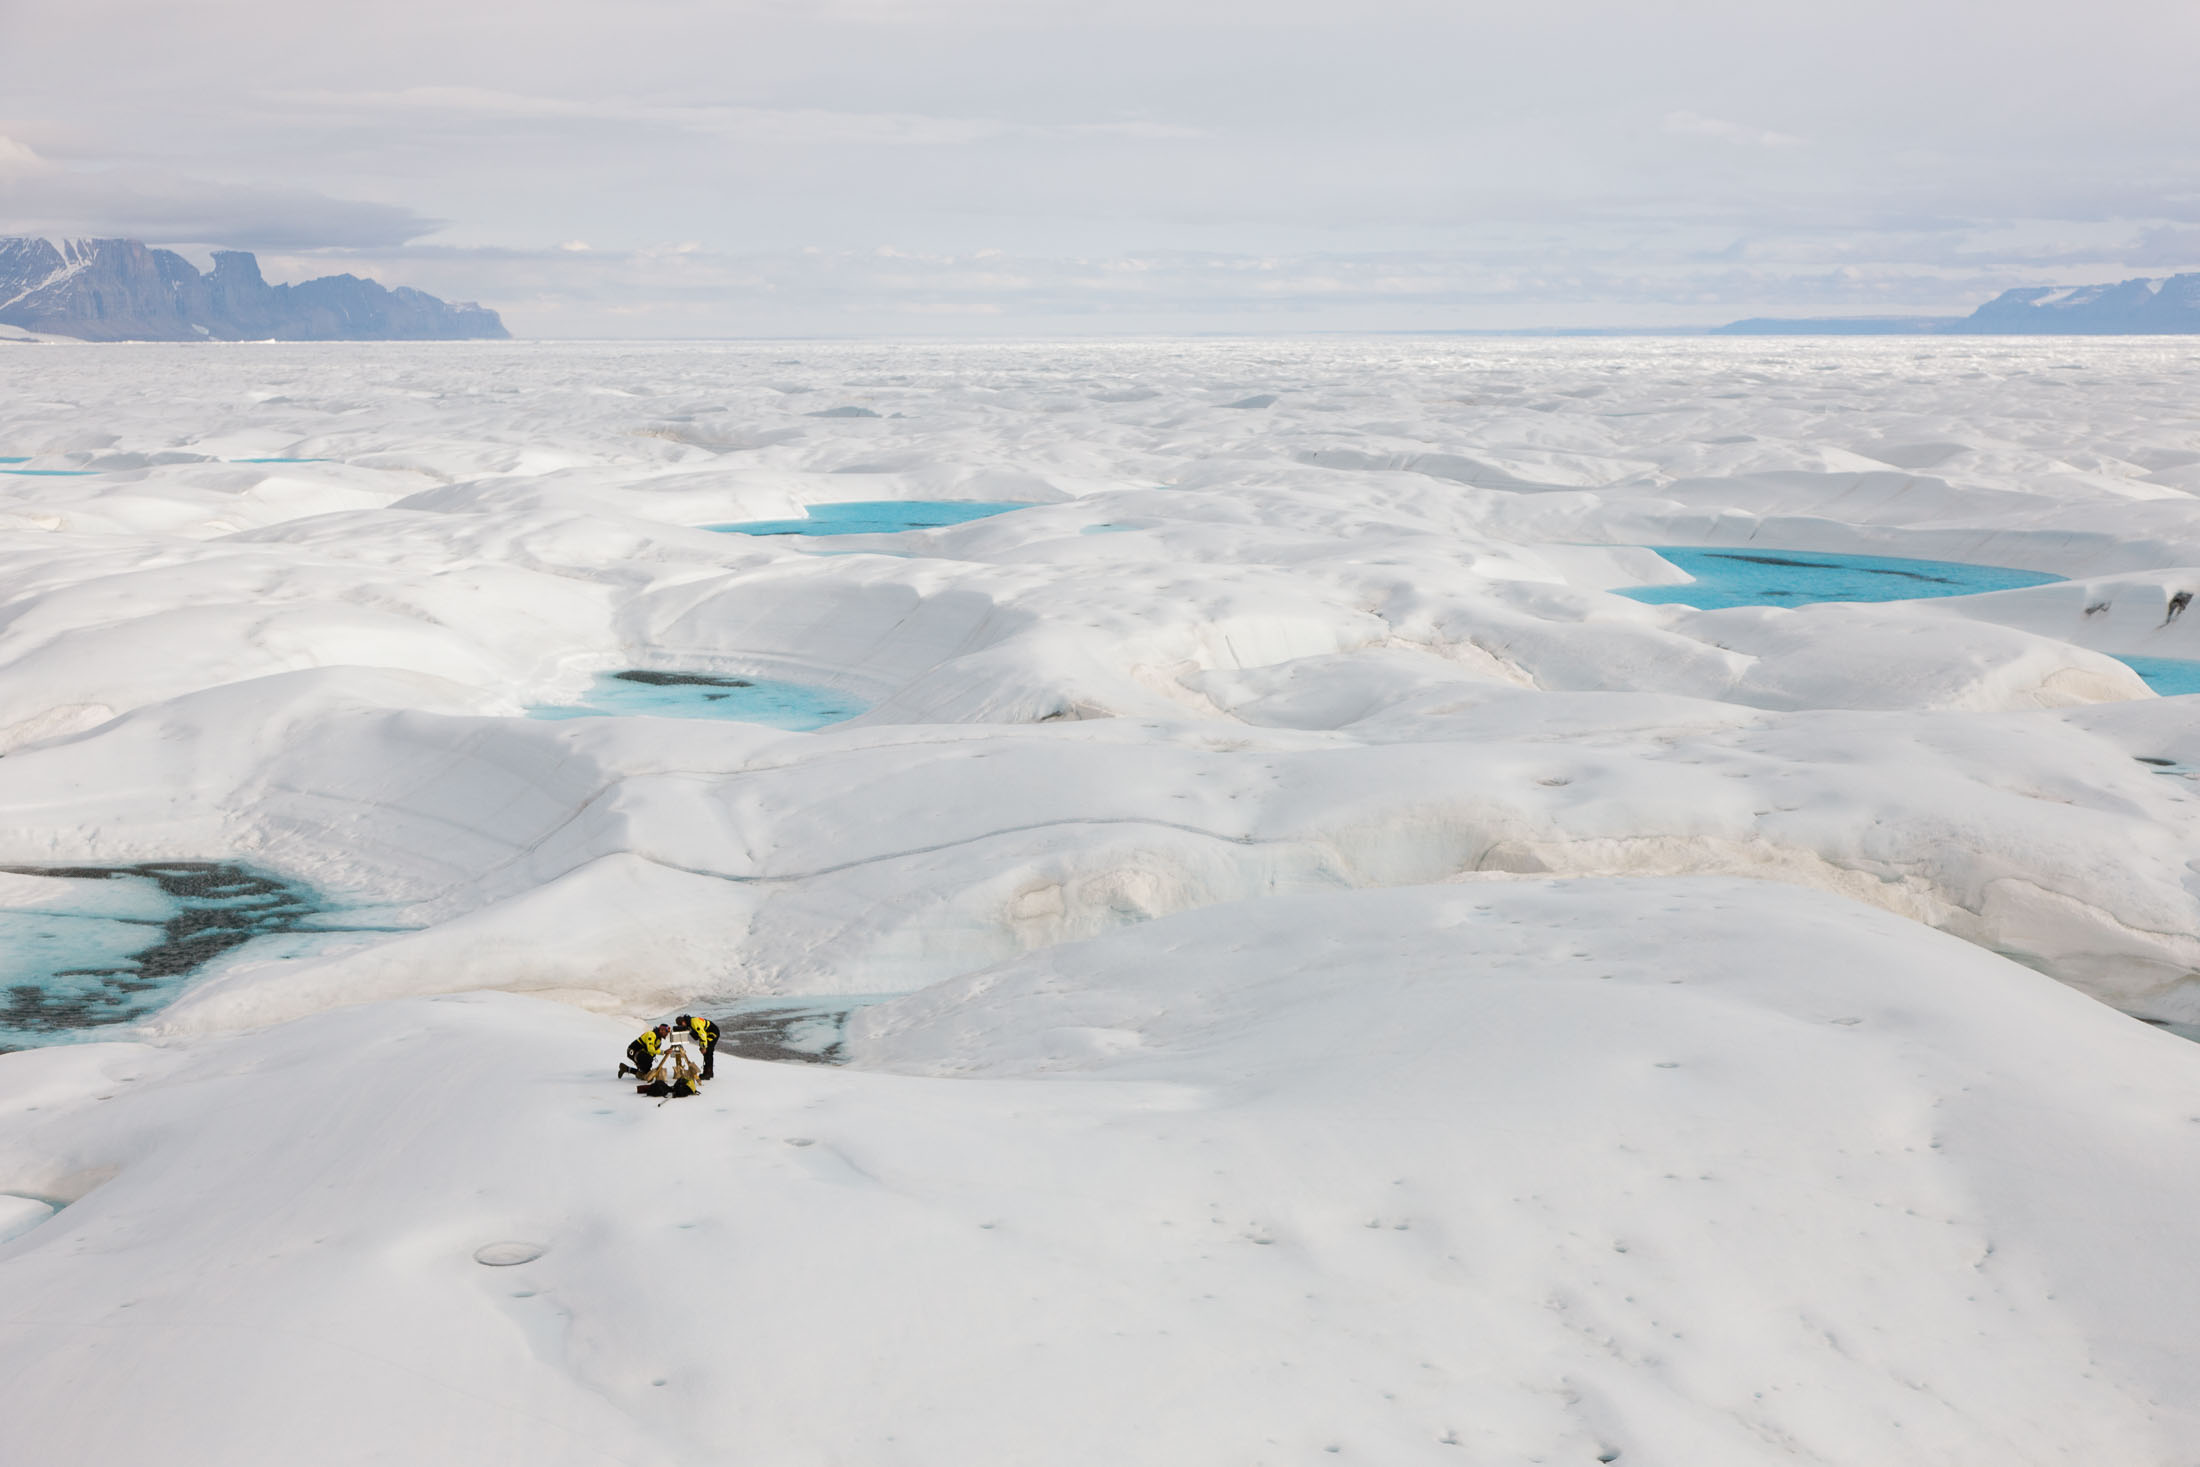 Scientists on the surface of a glacier on Greenland